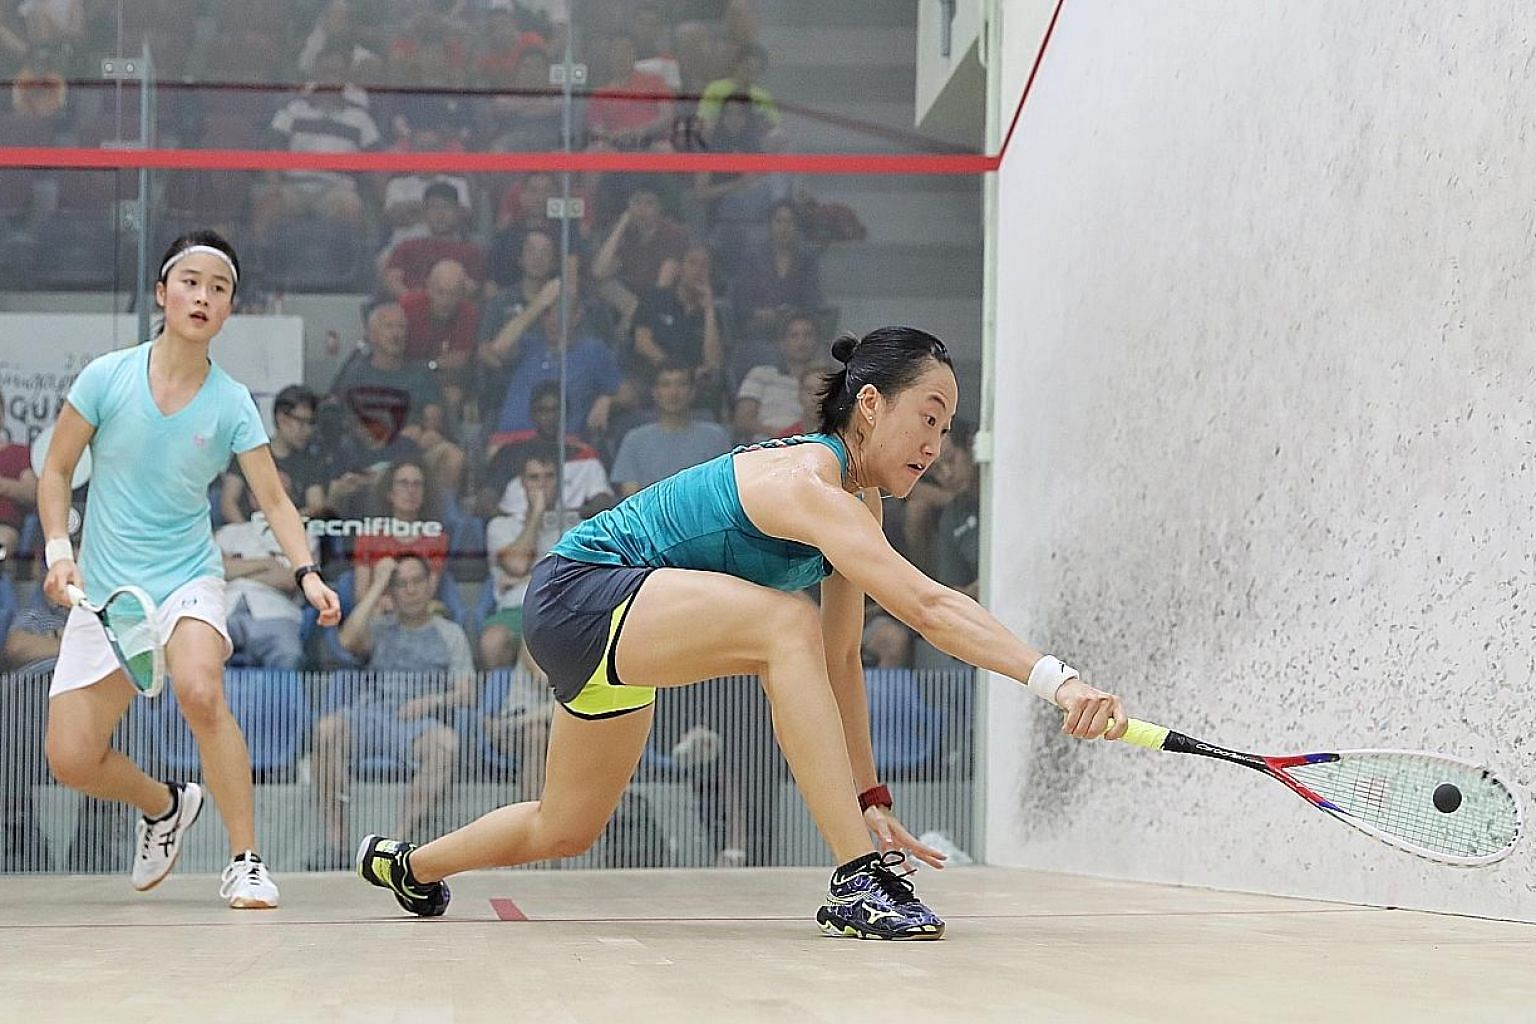 Low Wee Wern (right) returning a shot against Lee Ka Yi in the Singapore Squash Open women's final yesterday. The former world No. 5 won 11-6, 11-5, 11-3 at the Kallang Squash Centre.